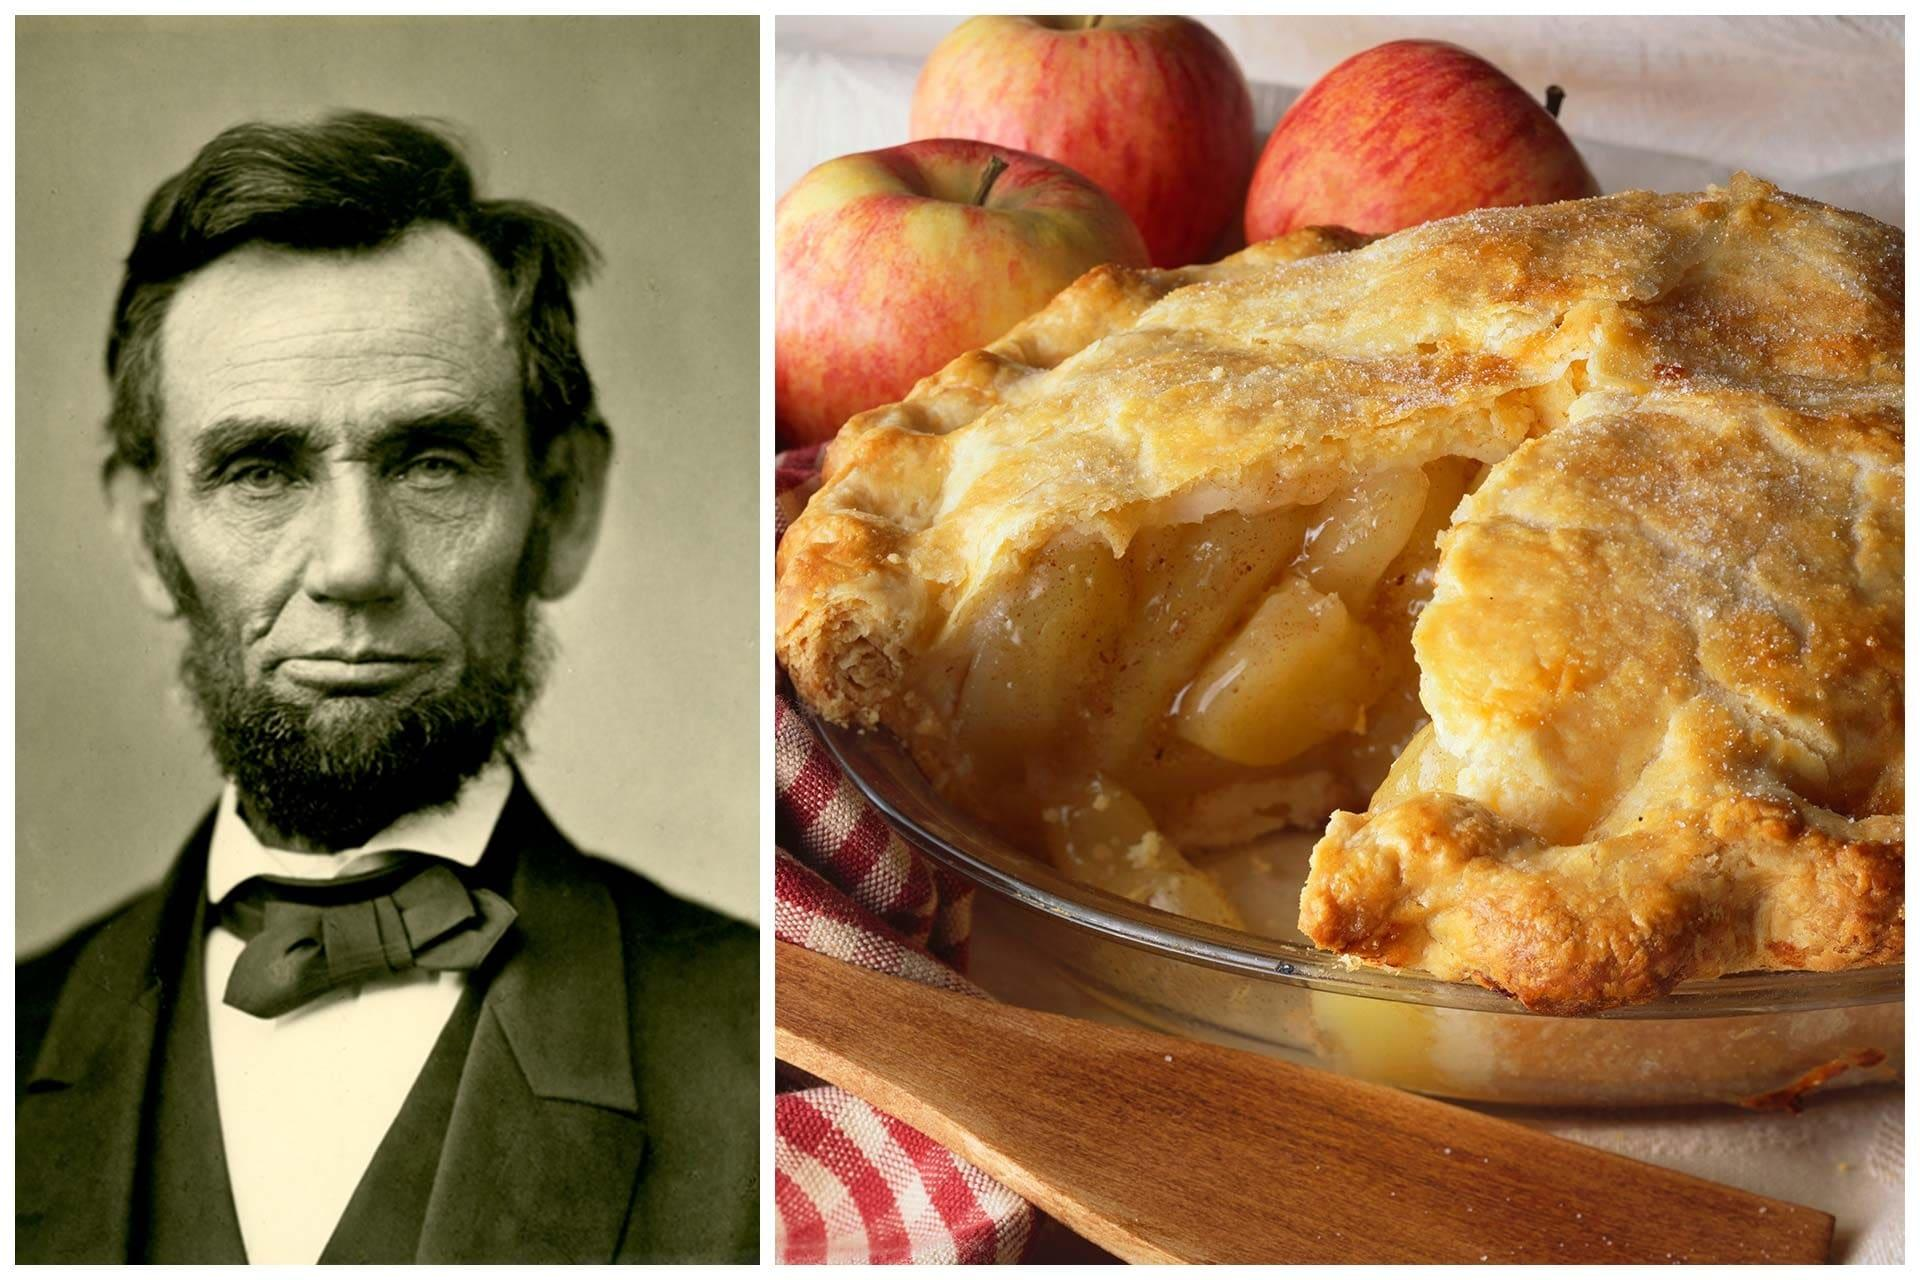 Abraham Lincoln's favourite dish